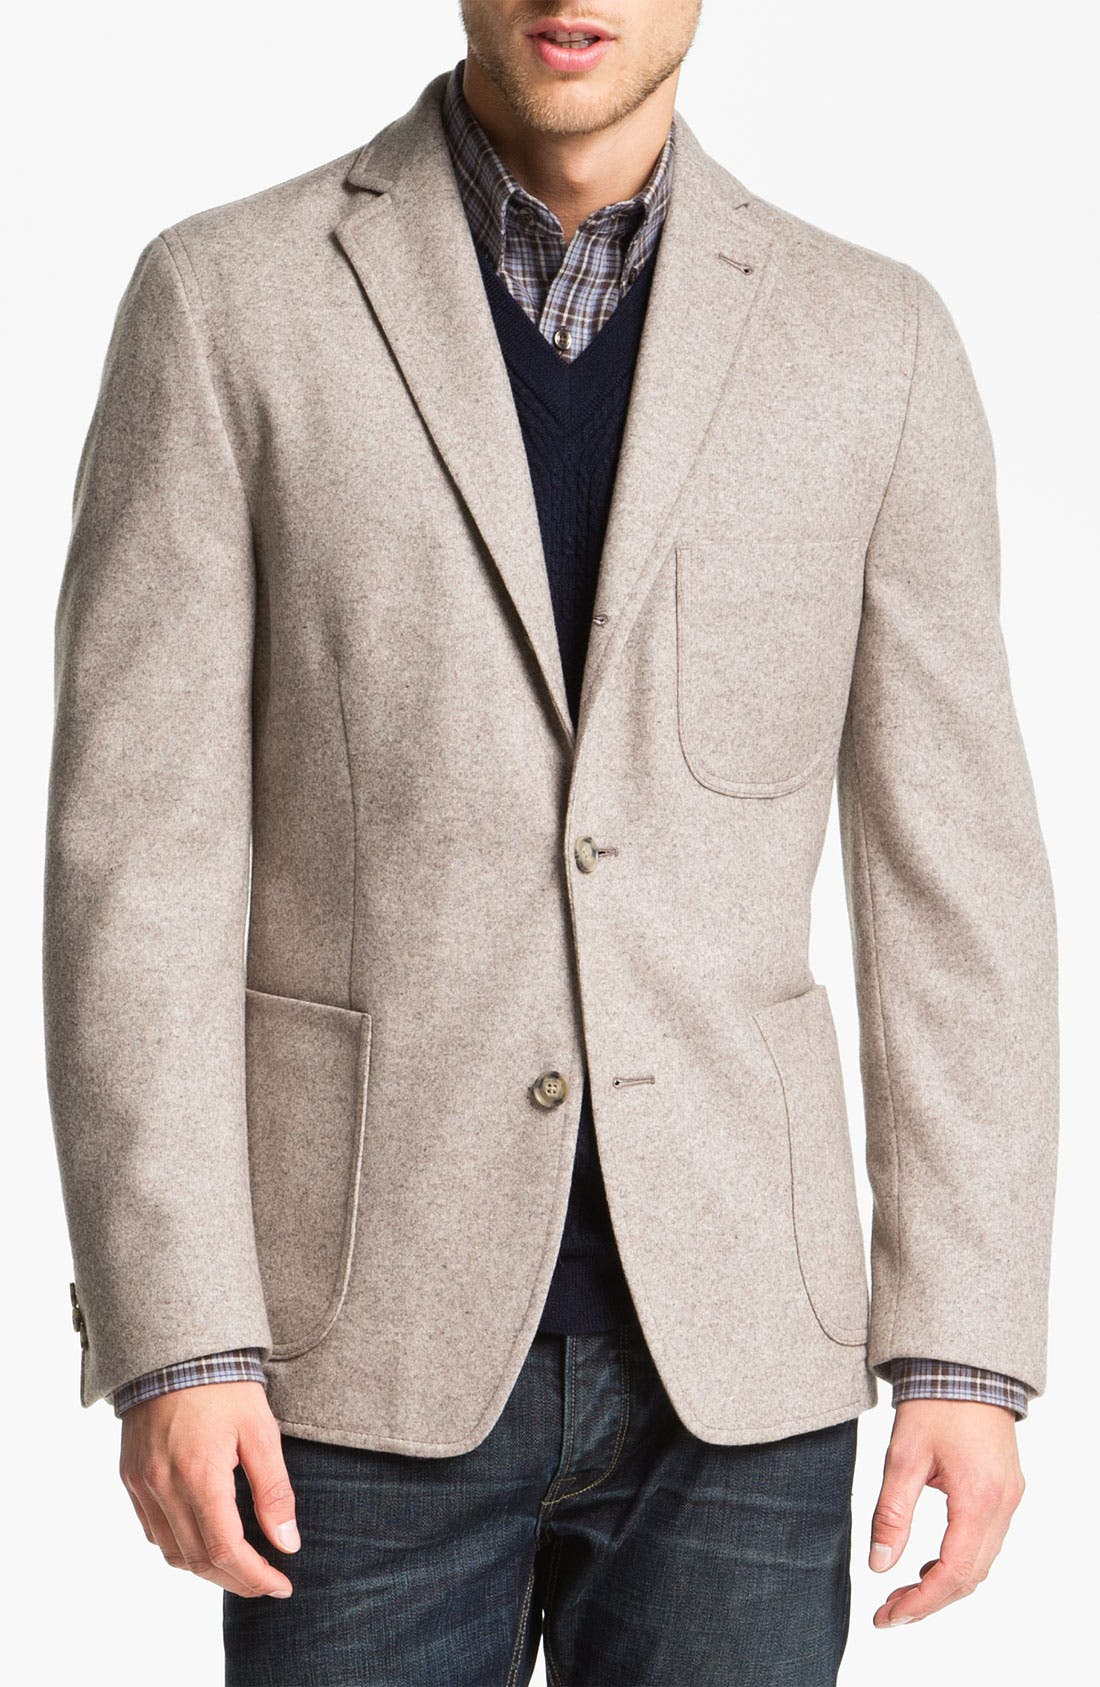 Alternate Image 1 Selected - Kroon 'Mayer' Wool & Cashmere Blend Knit Sportcoat